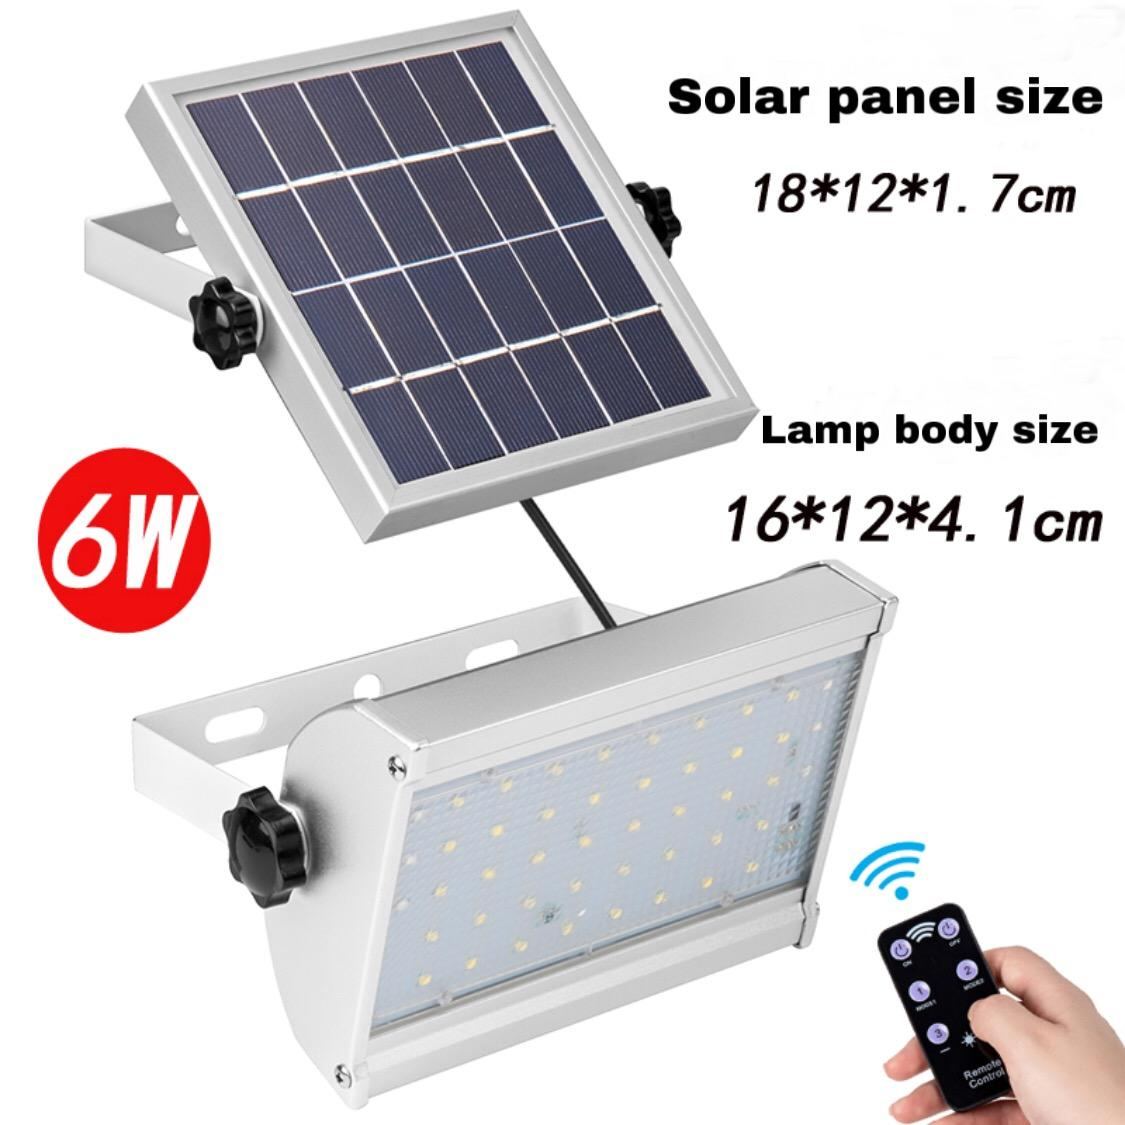 Pat Hei Gate Hardware China solar panel light kit looking for buyer for door